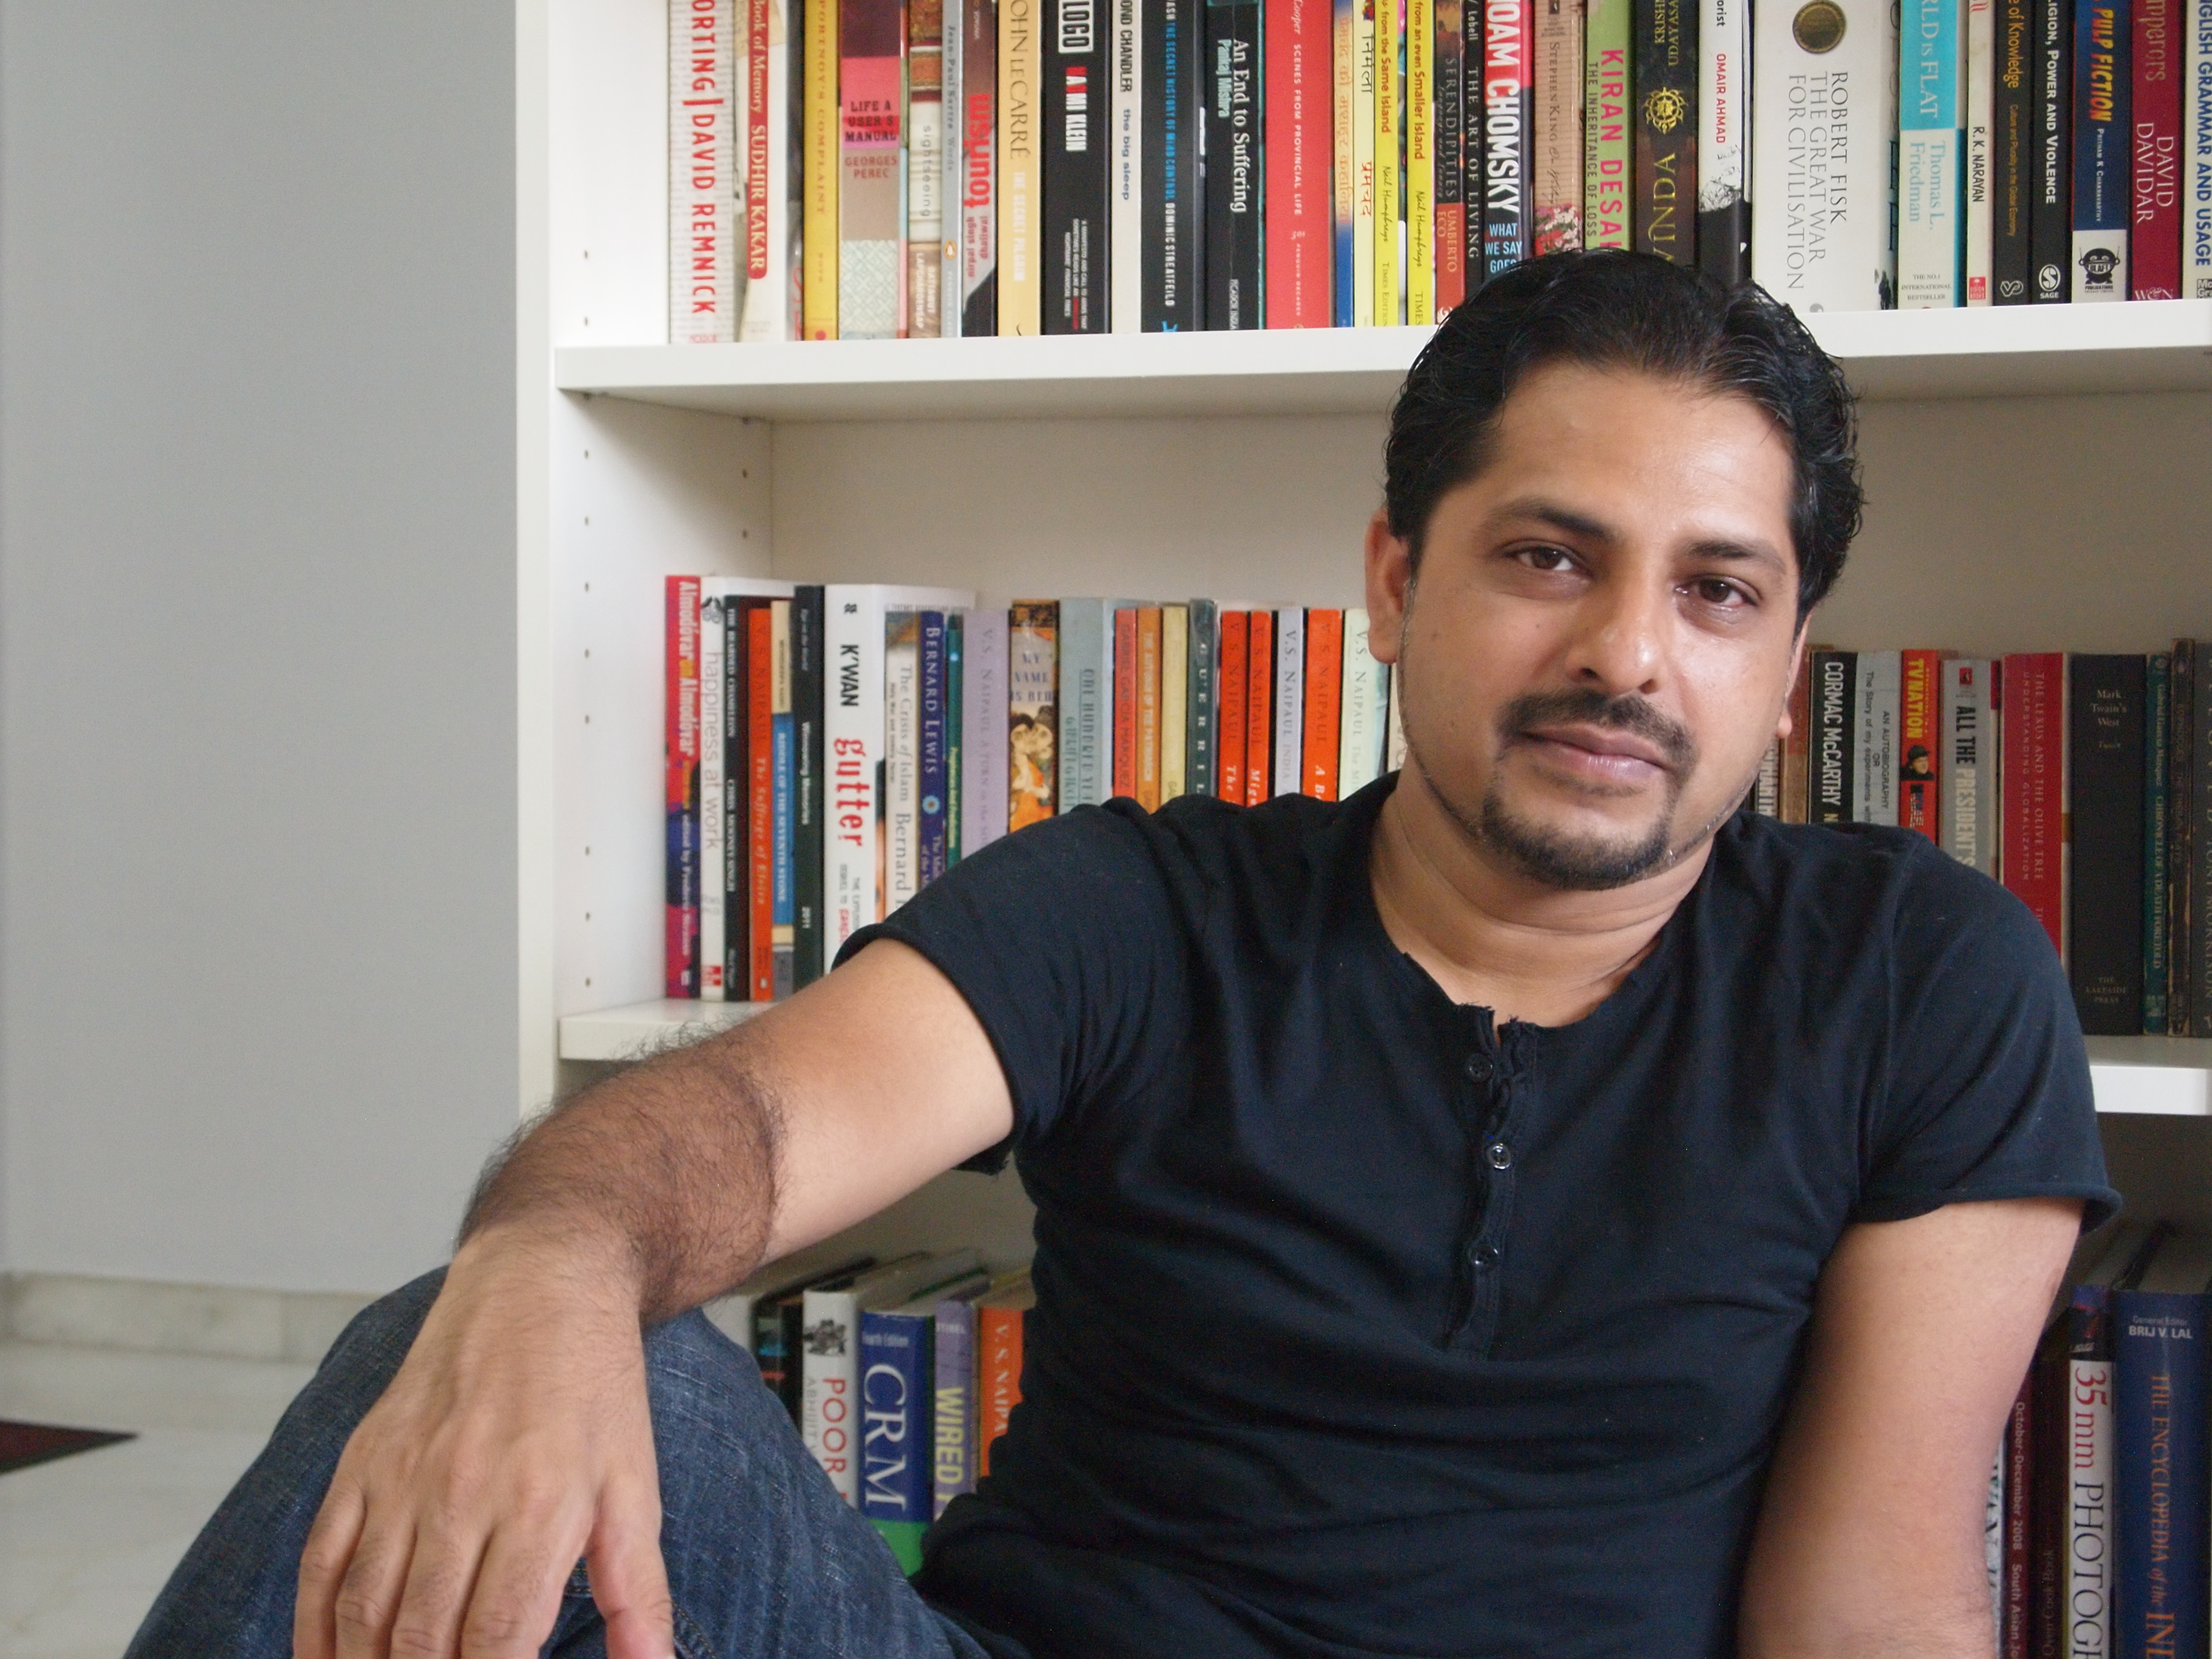 Zafar has worked in Australia, Singapore and India